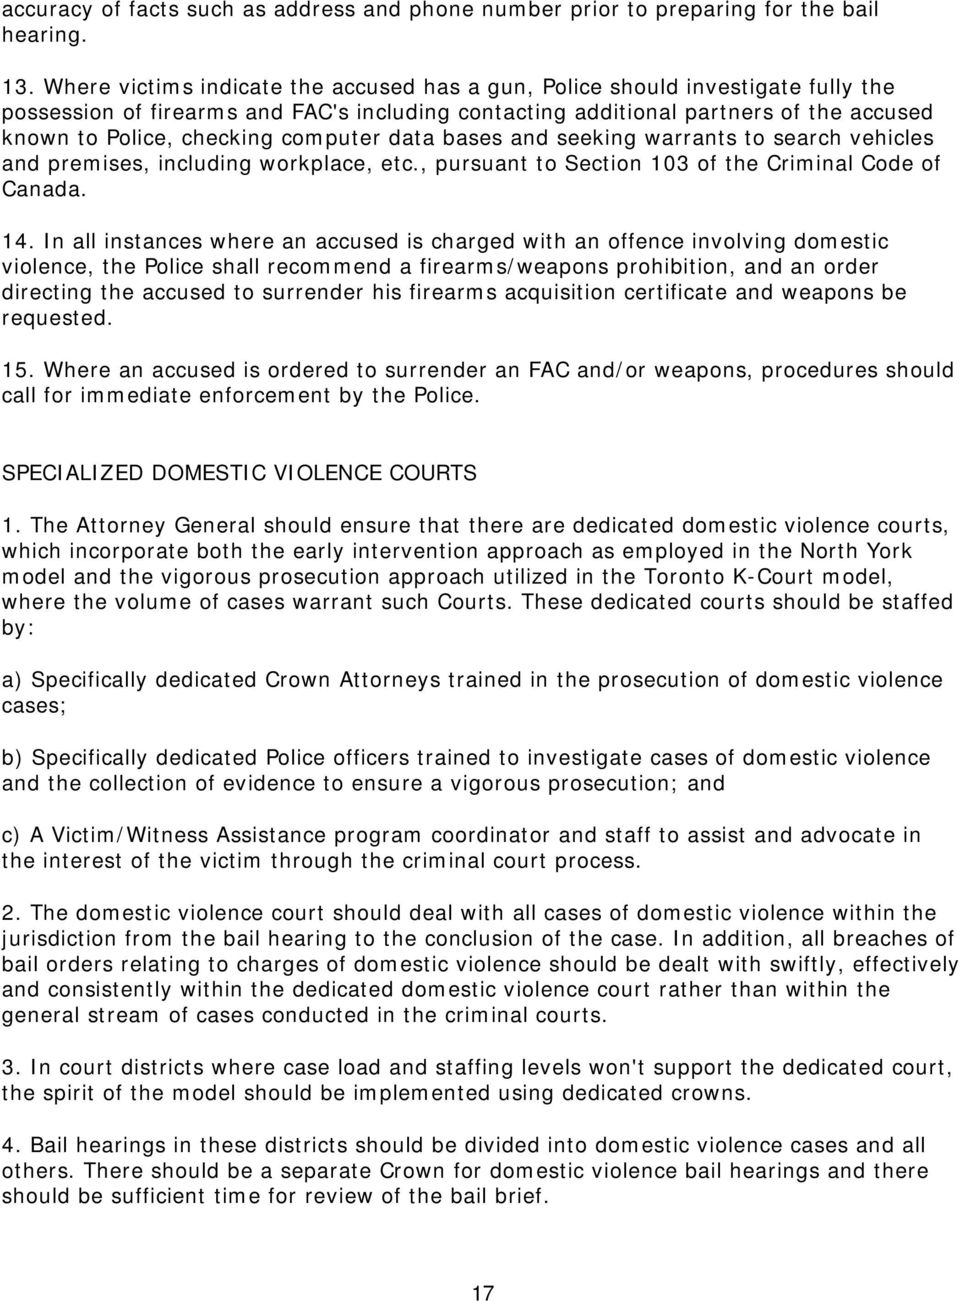 computer data bases and seeking warrants to search vehicles and premises, including workplace, etc., pursuant to Section 103 of the Criminal Code of Canada. 14.